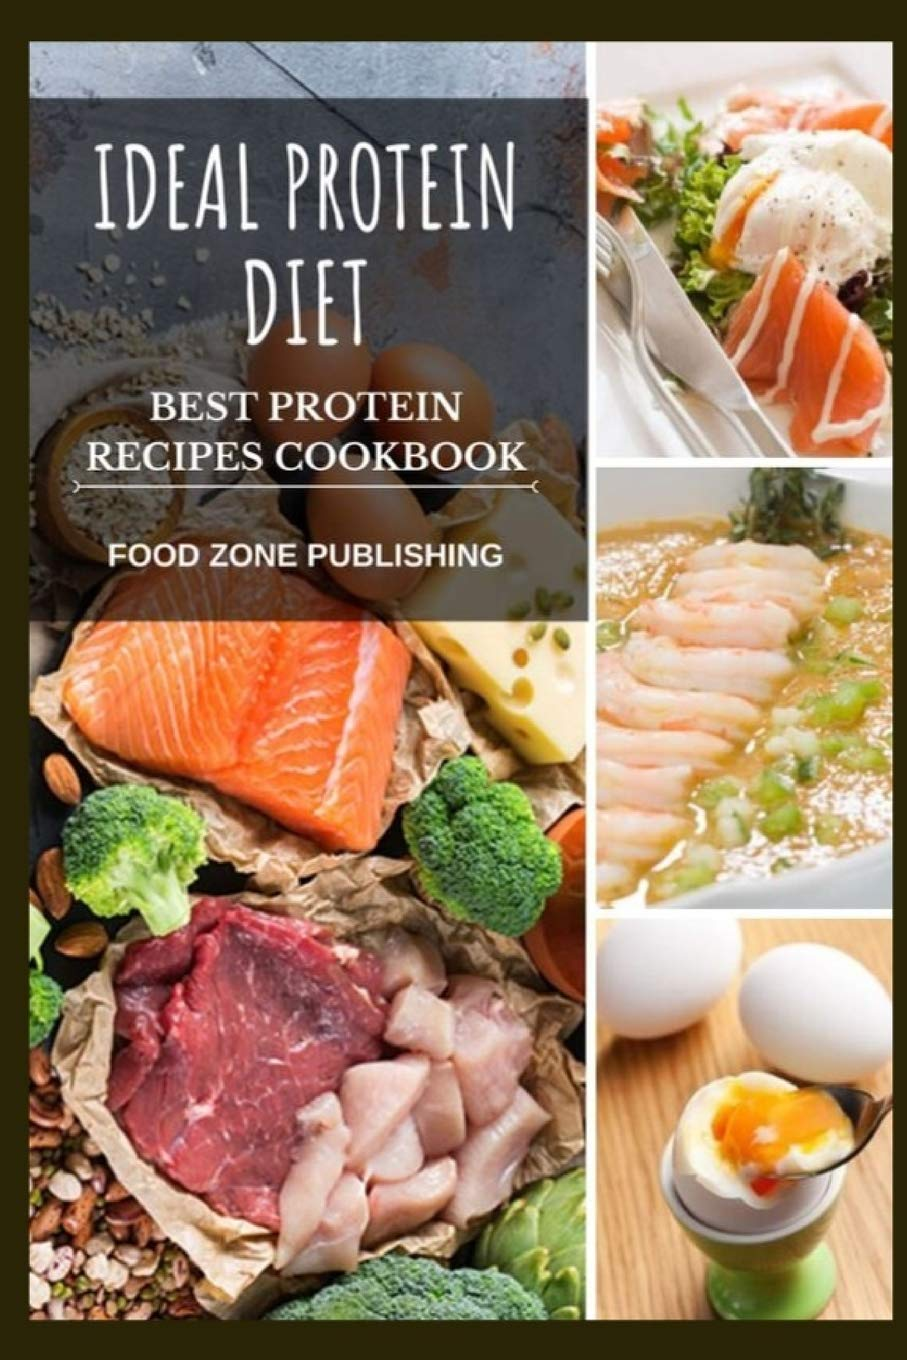 Ideal Protein Diet: Best Protein Recipes Cookbook: Zone Publishing